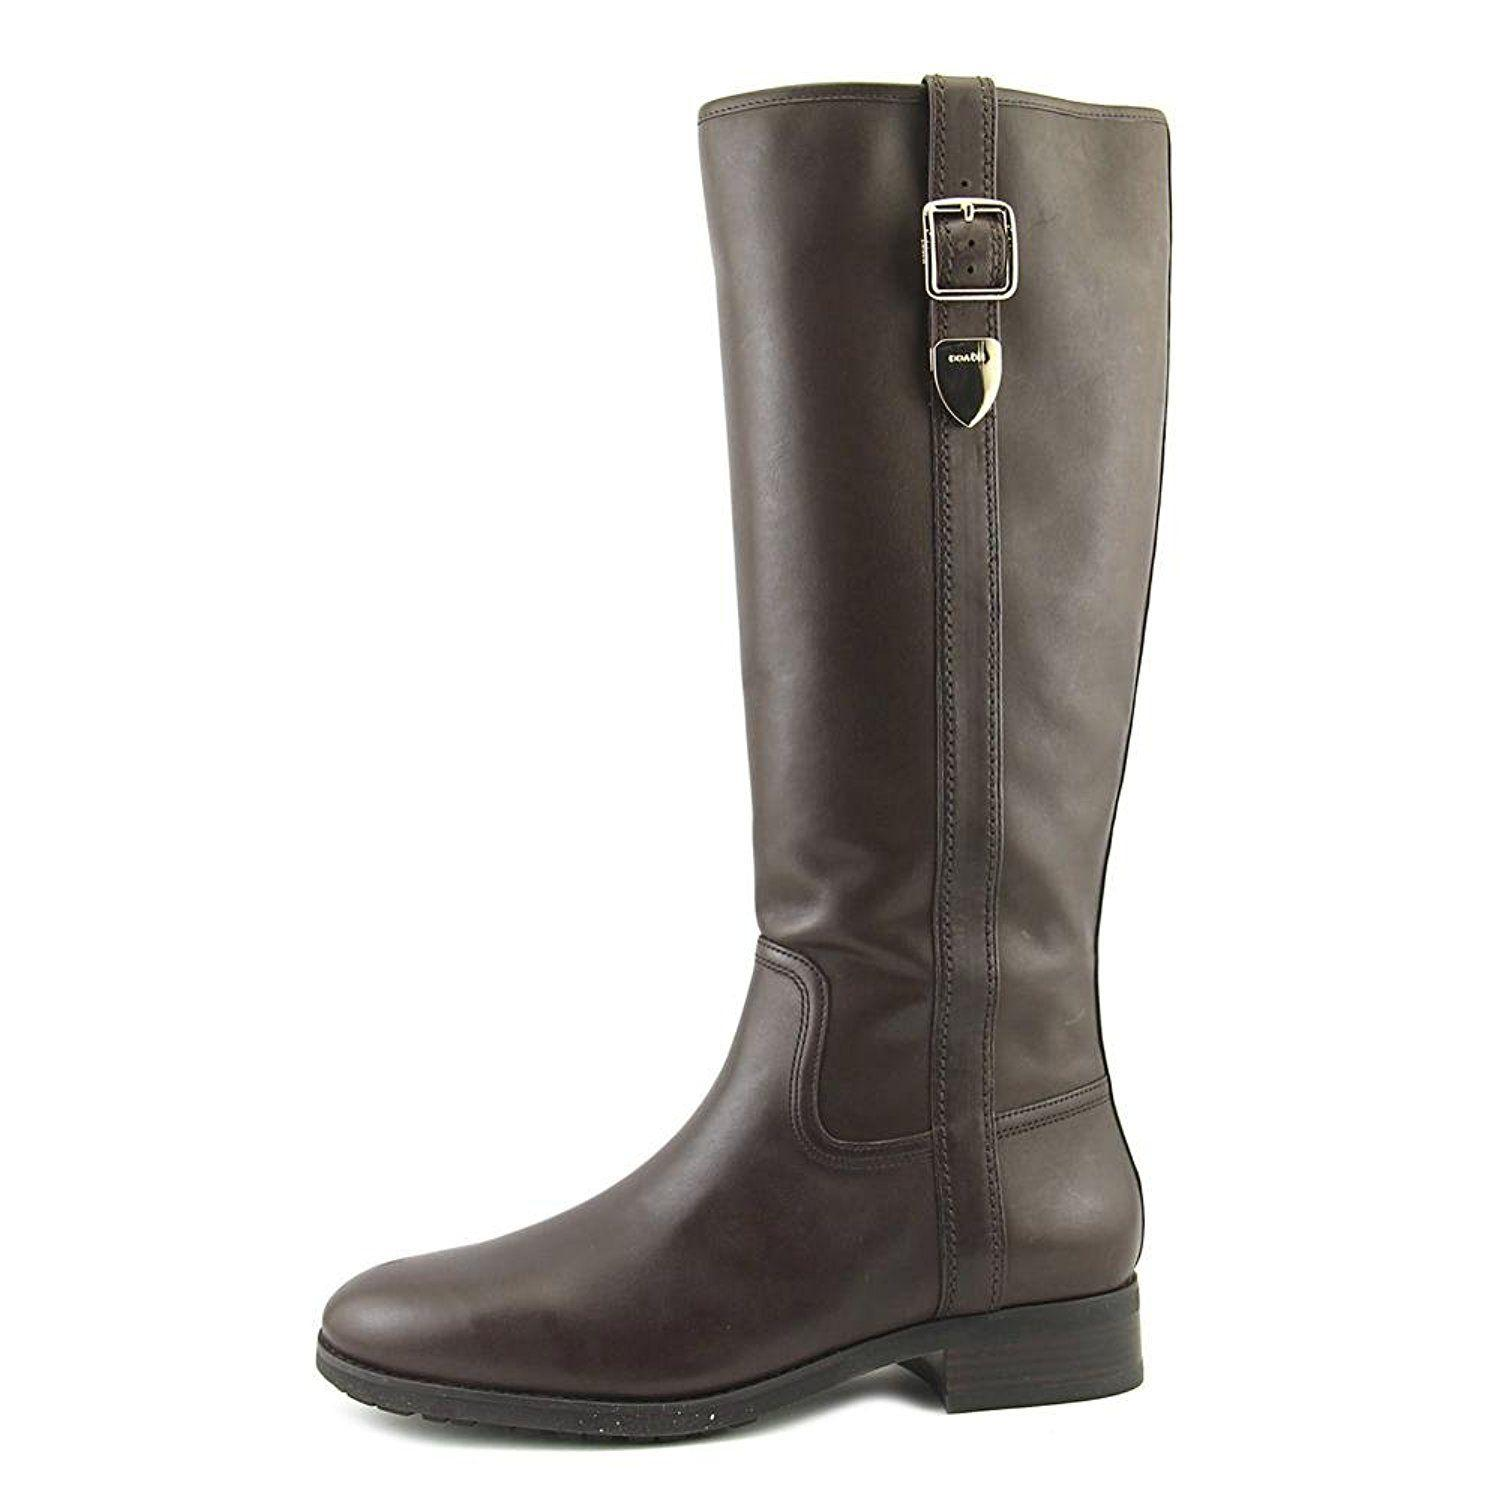 f741532dff9 Lyst - Coach Womens Easton Closed Toe Knee High Fashion Boots in Brown